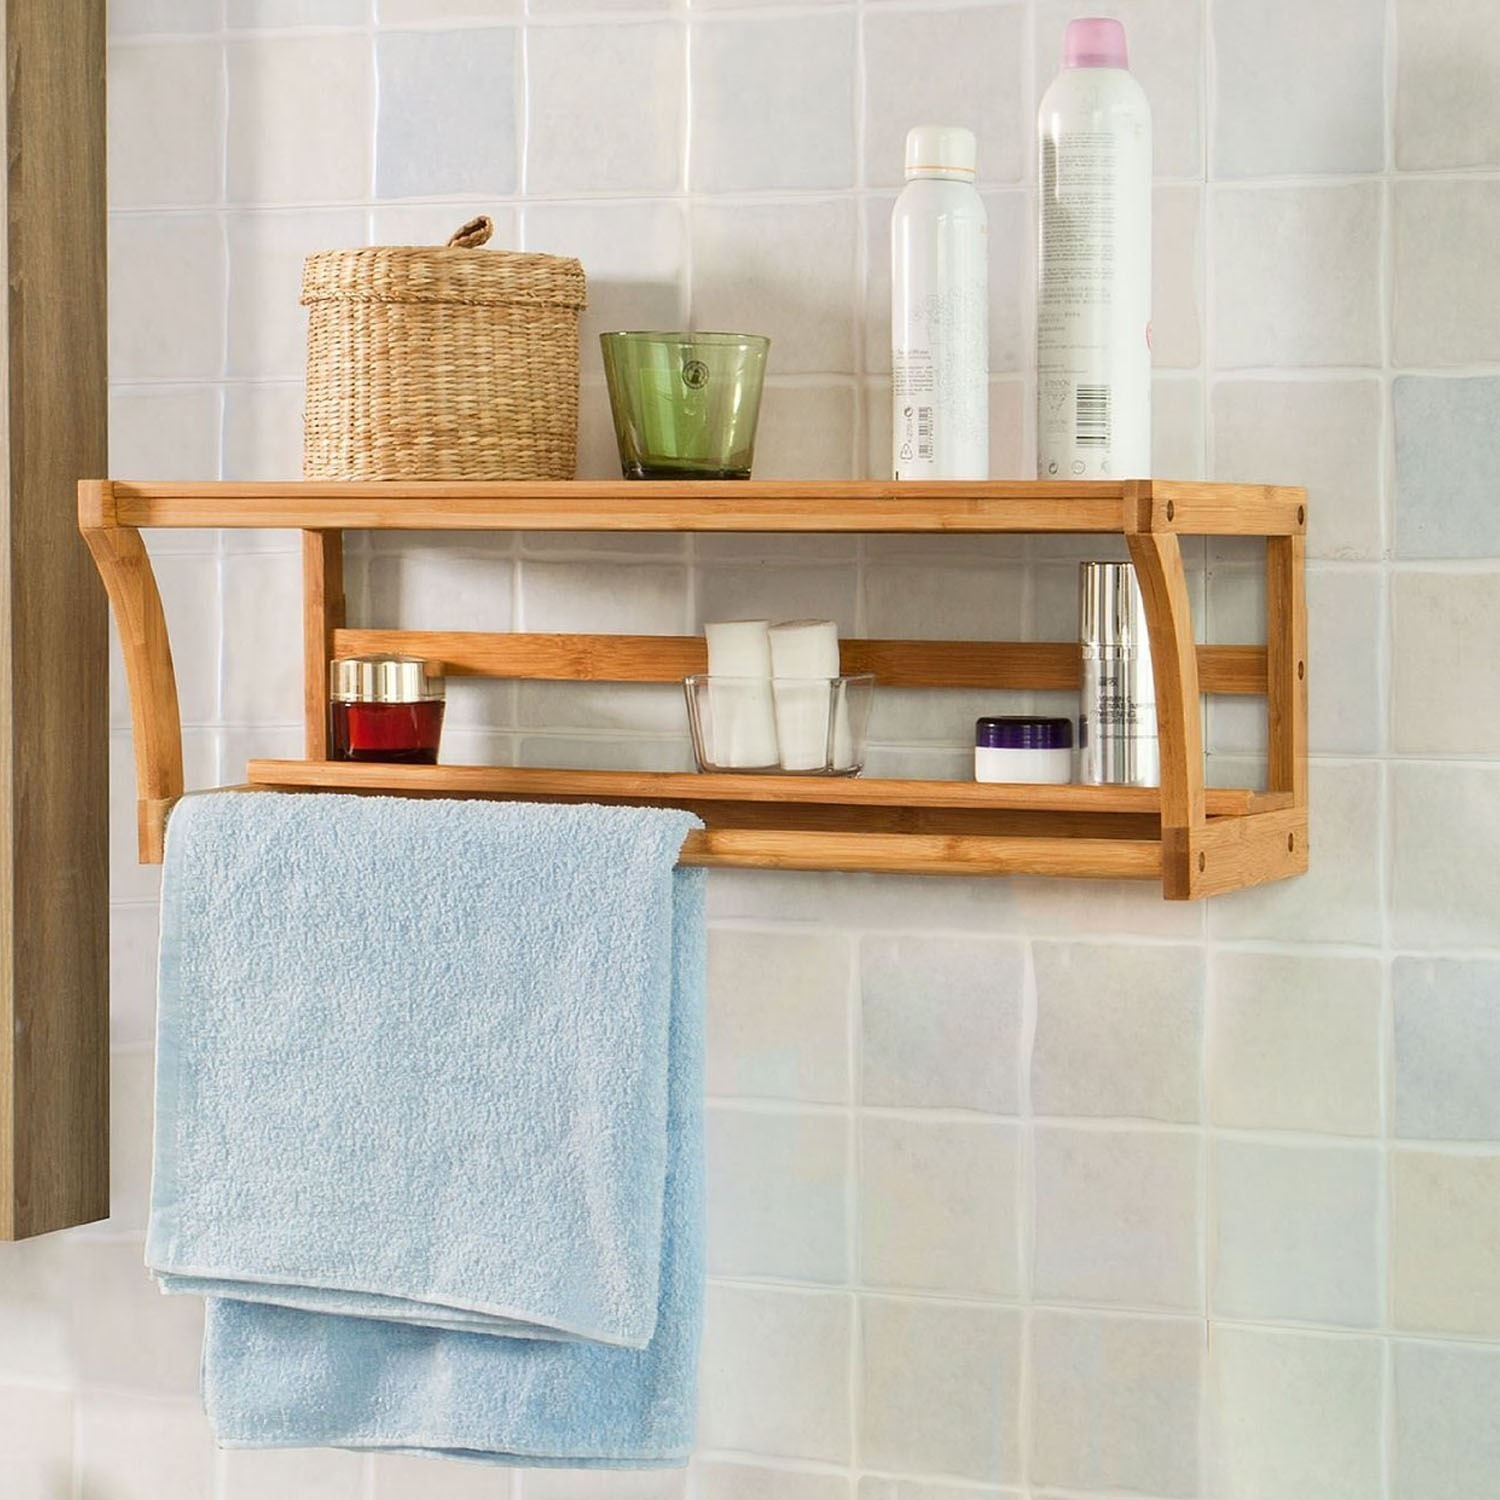 Bamboo Bathroom Organiser Unit with Towel Rail Hanger, Wooden Wall Mounted Rack Storage Shelf for Shamboo WAF